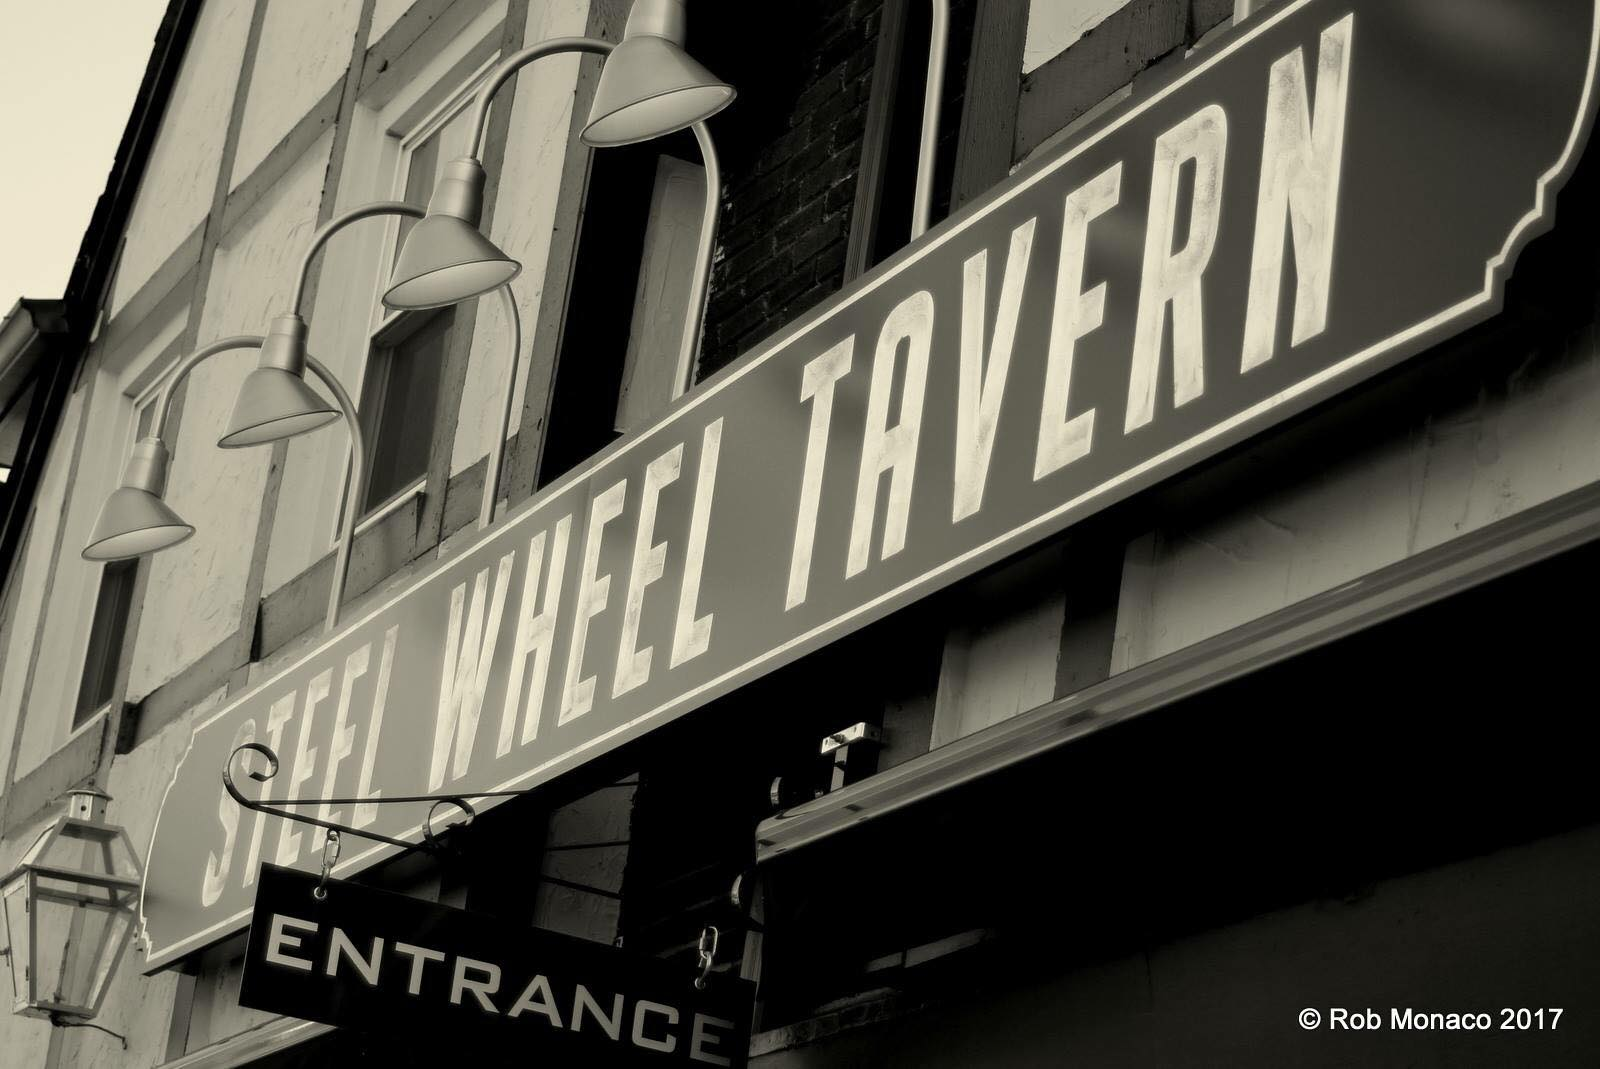 Steel Wheel Tavern sign black and white